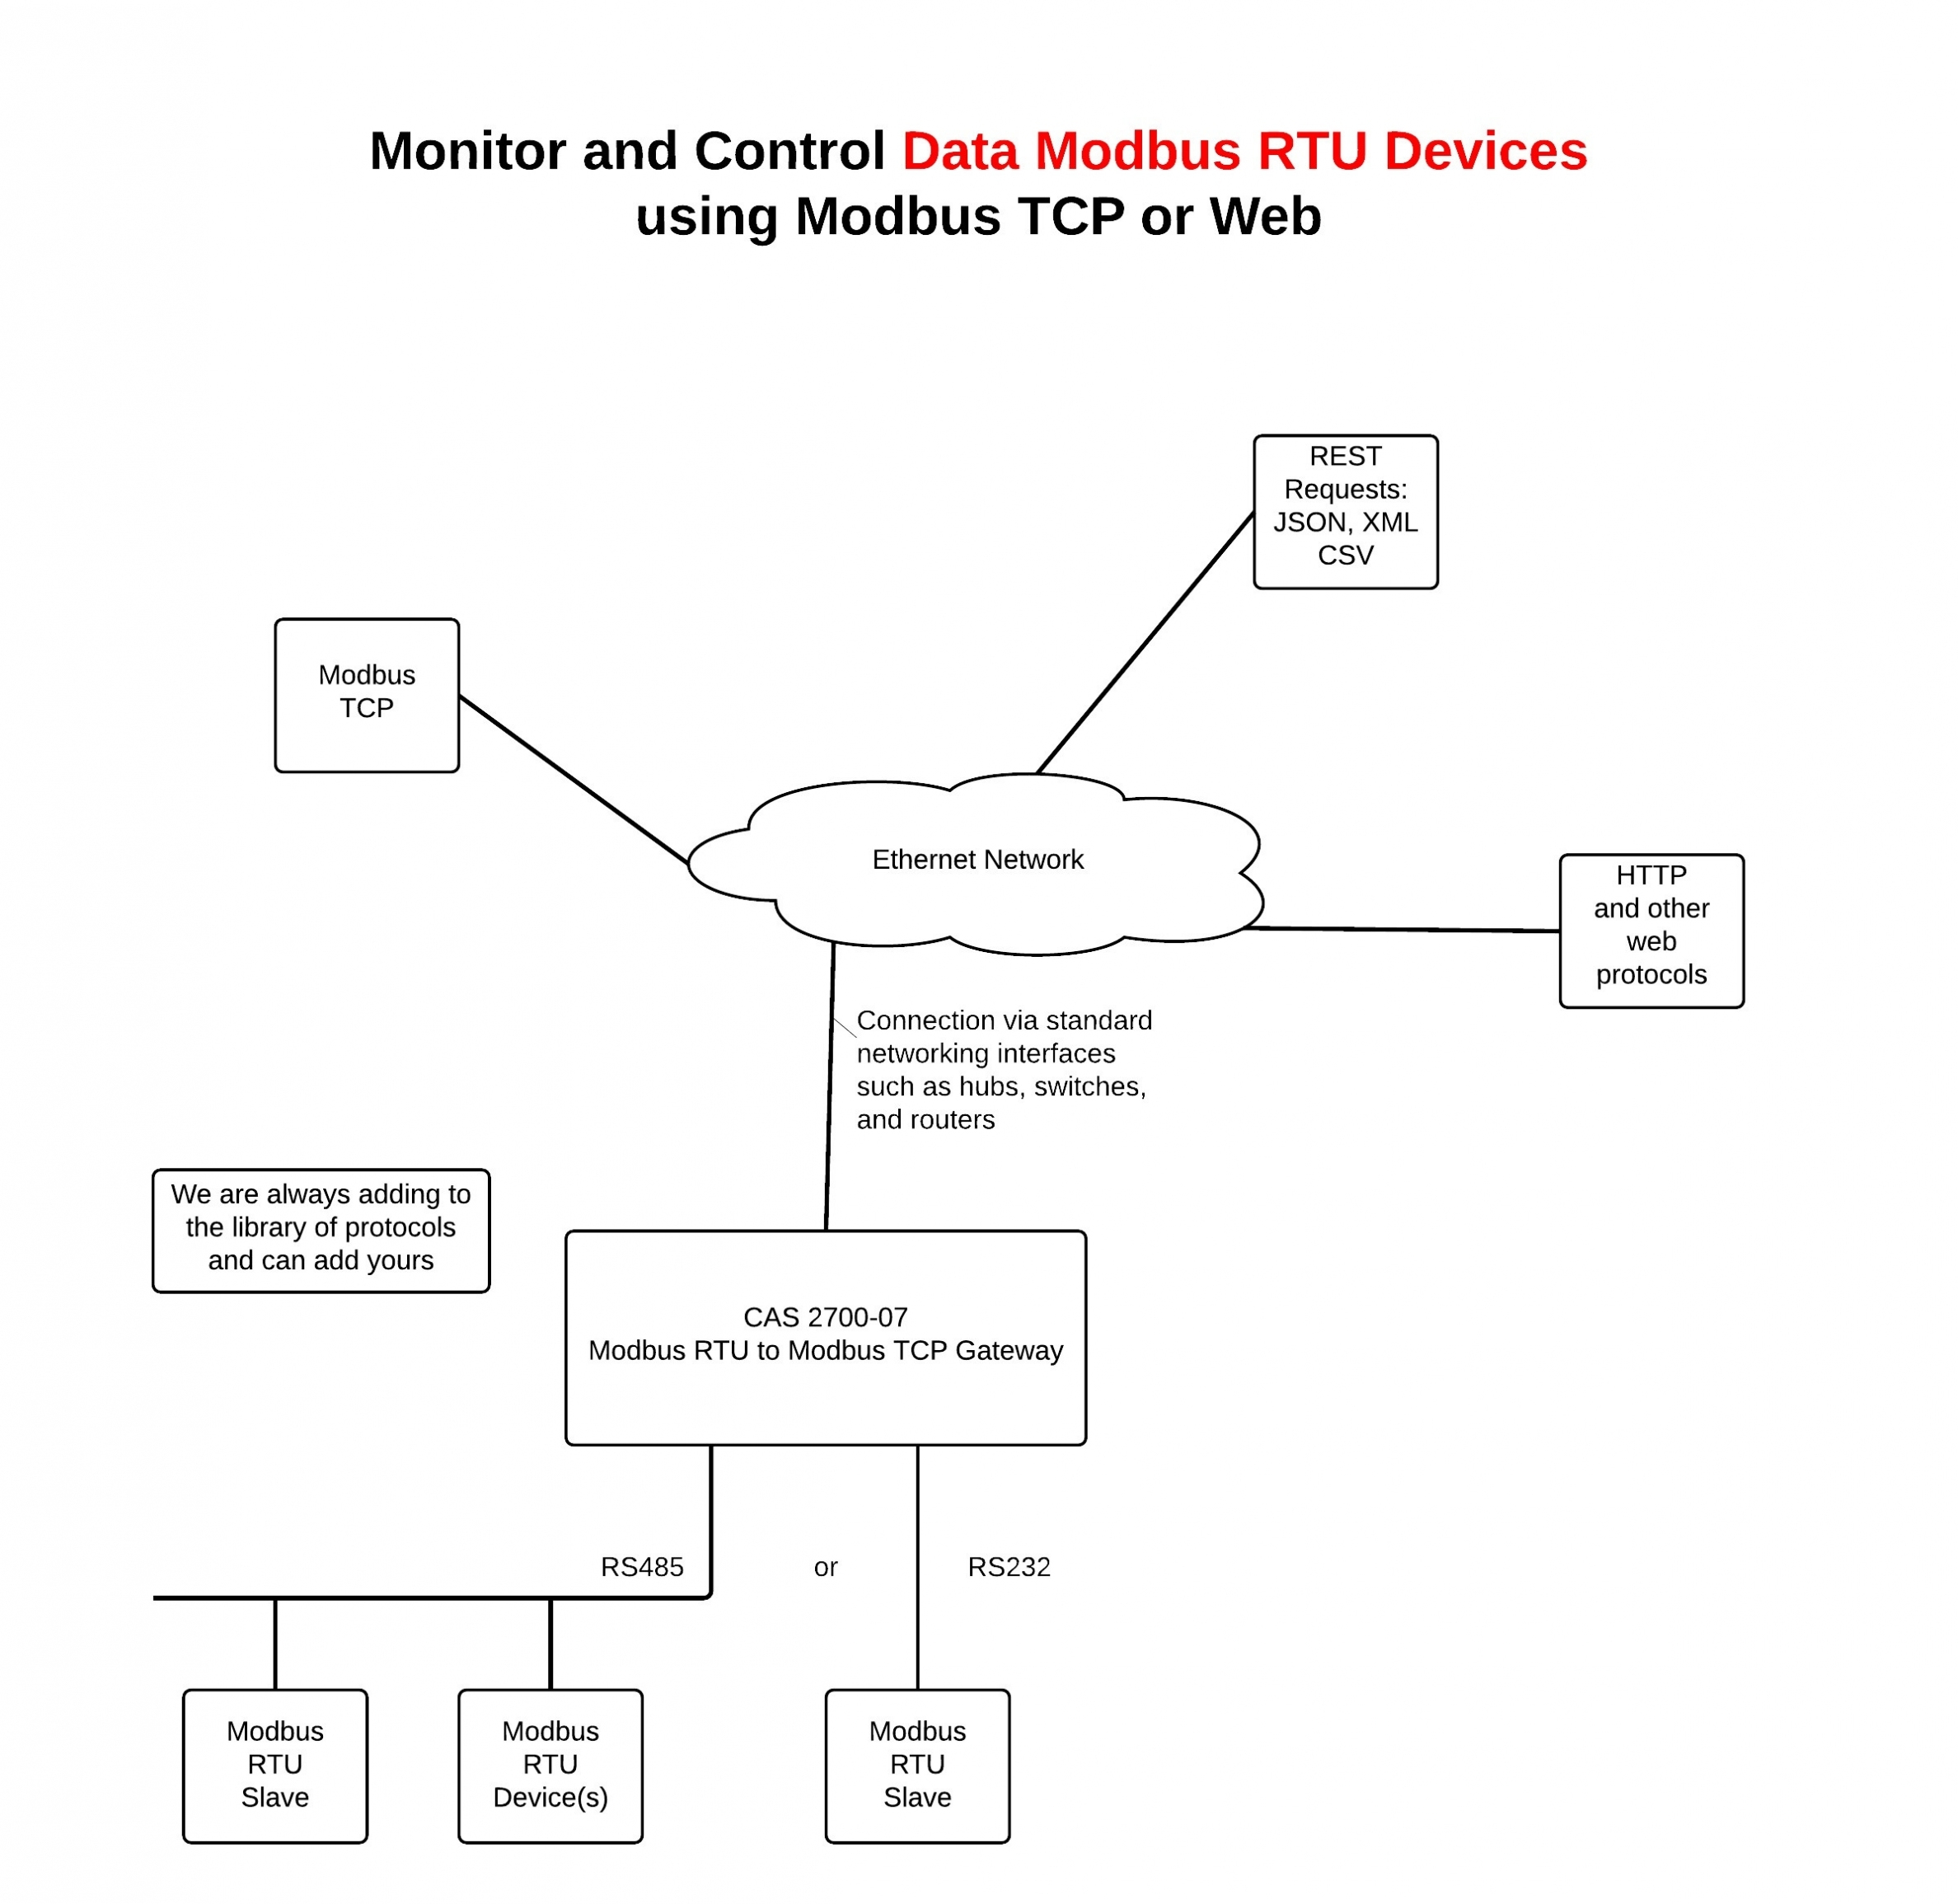 telephone network interface wiring diagram | free wiring ... for a new telephone wiring diagram for installation